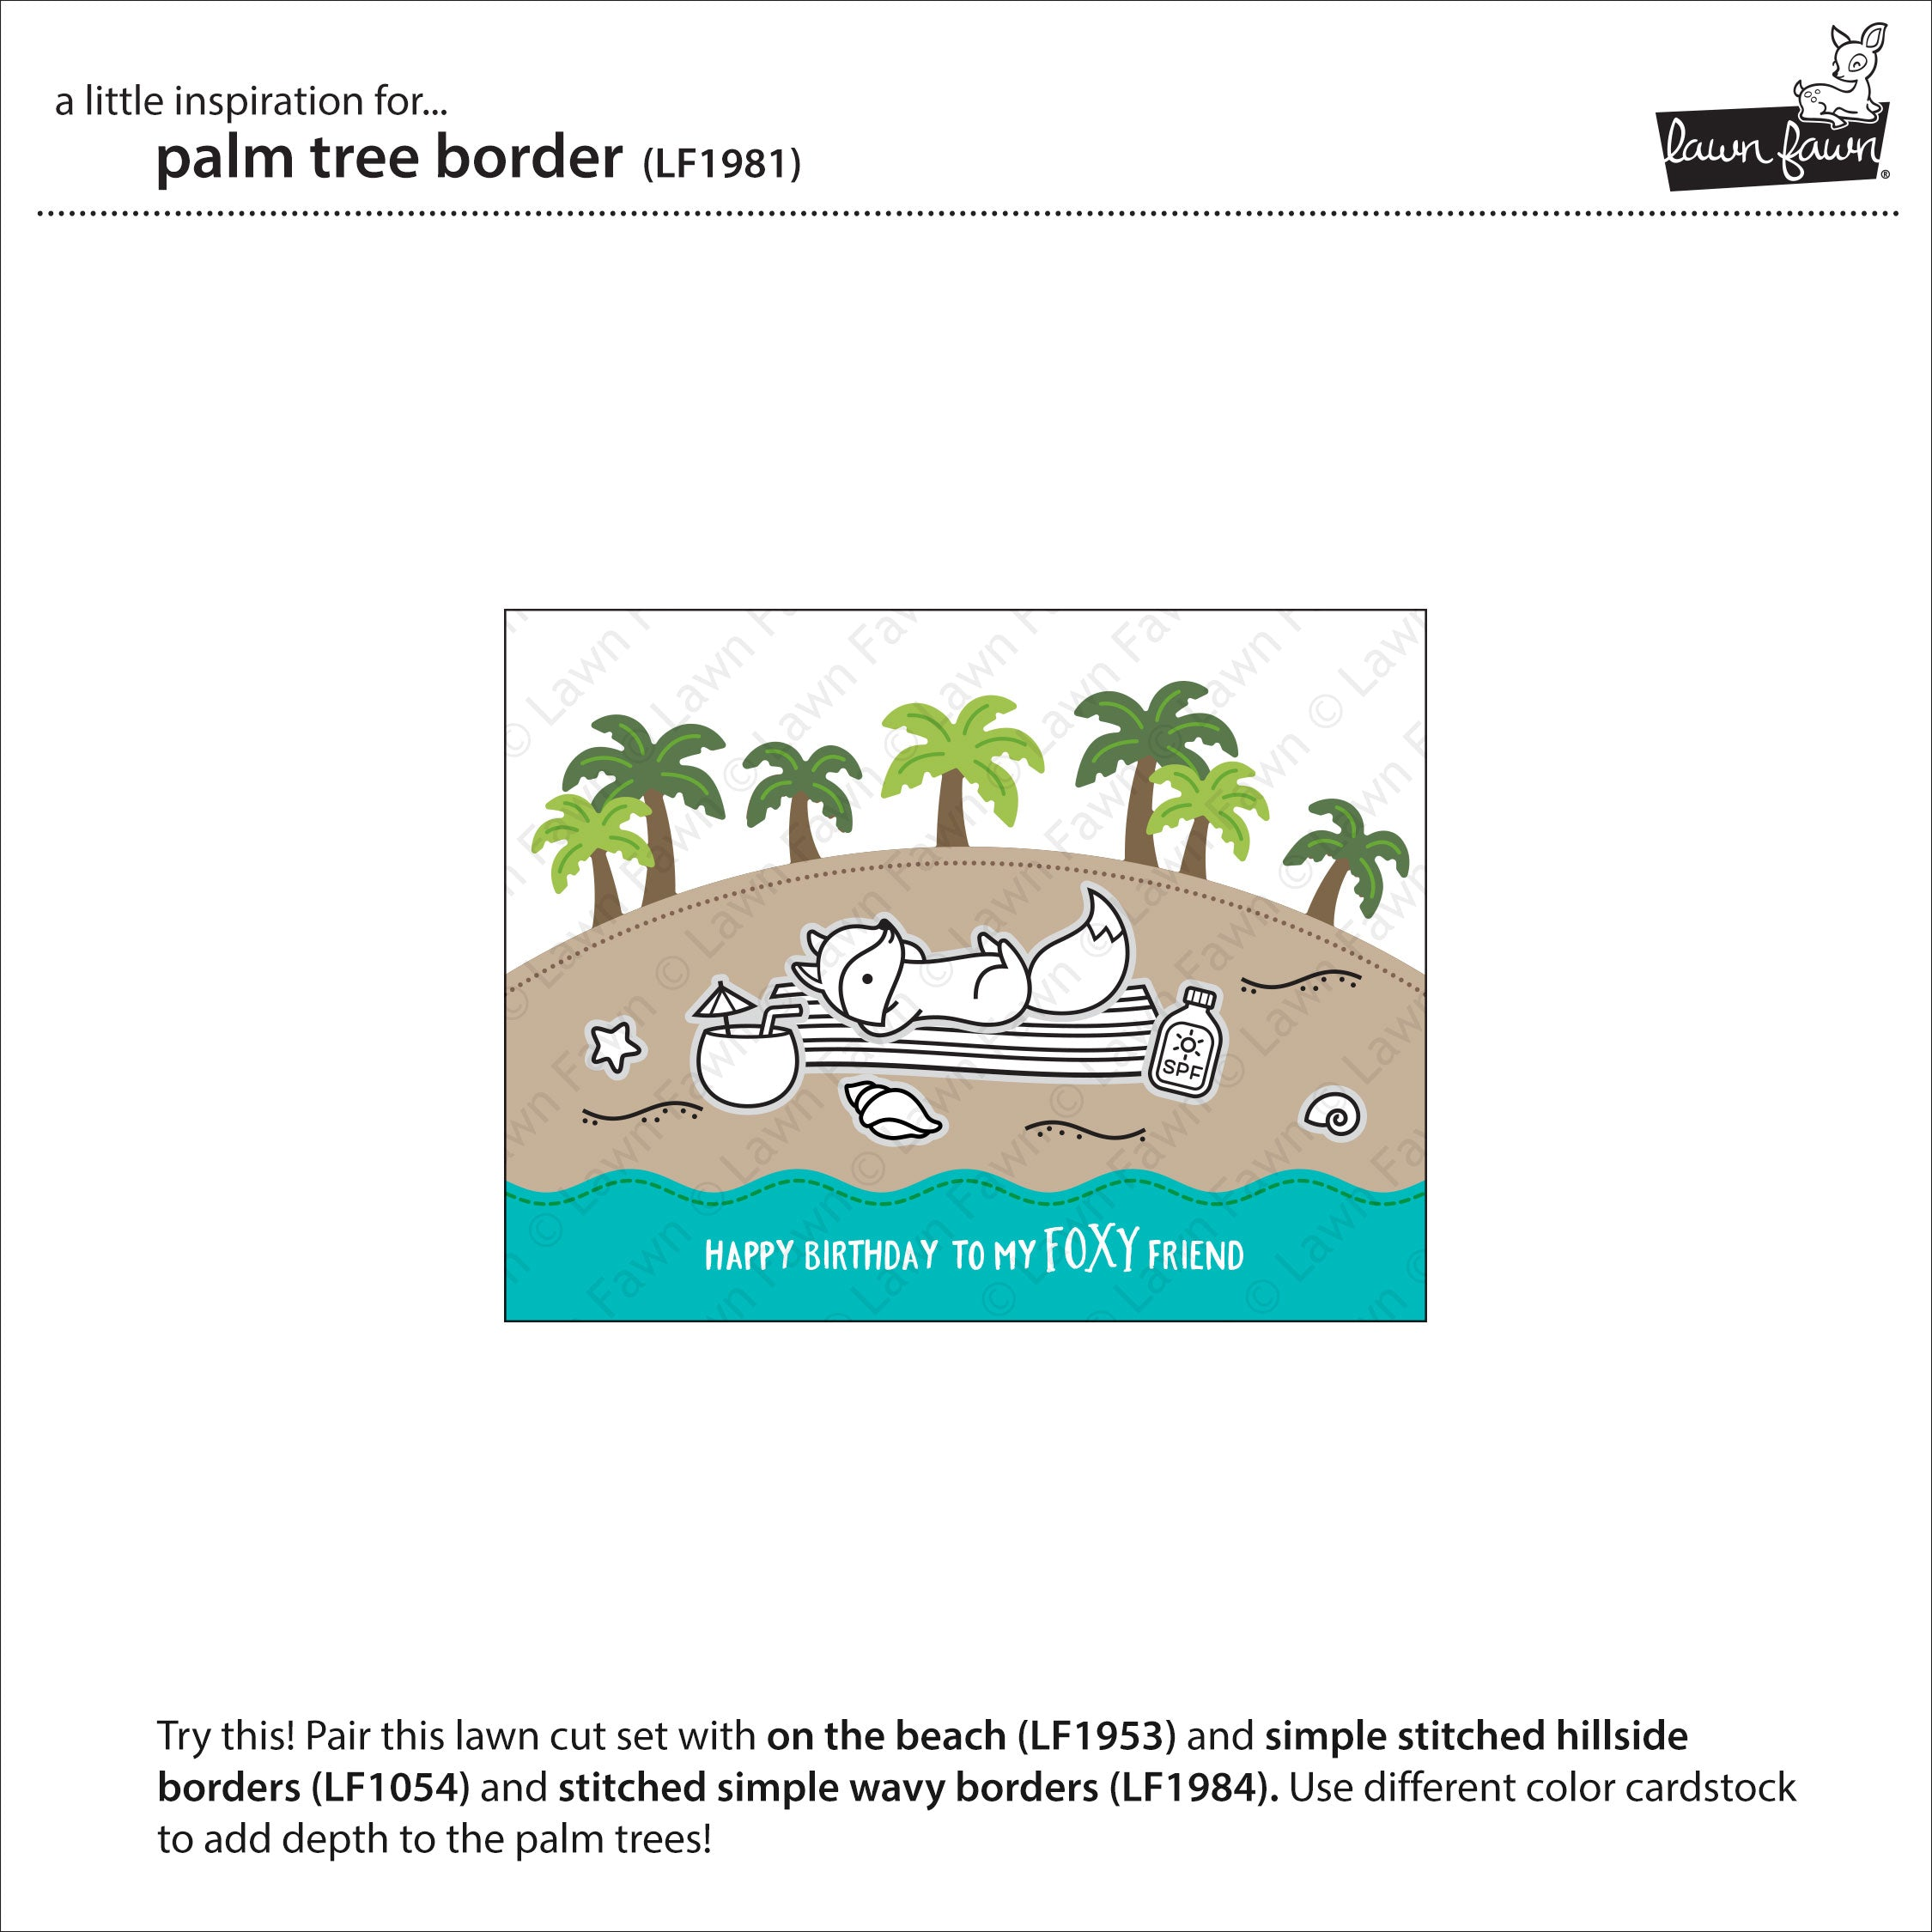 palm tree border